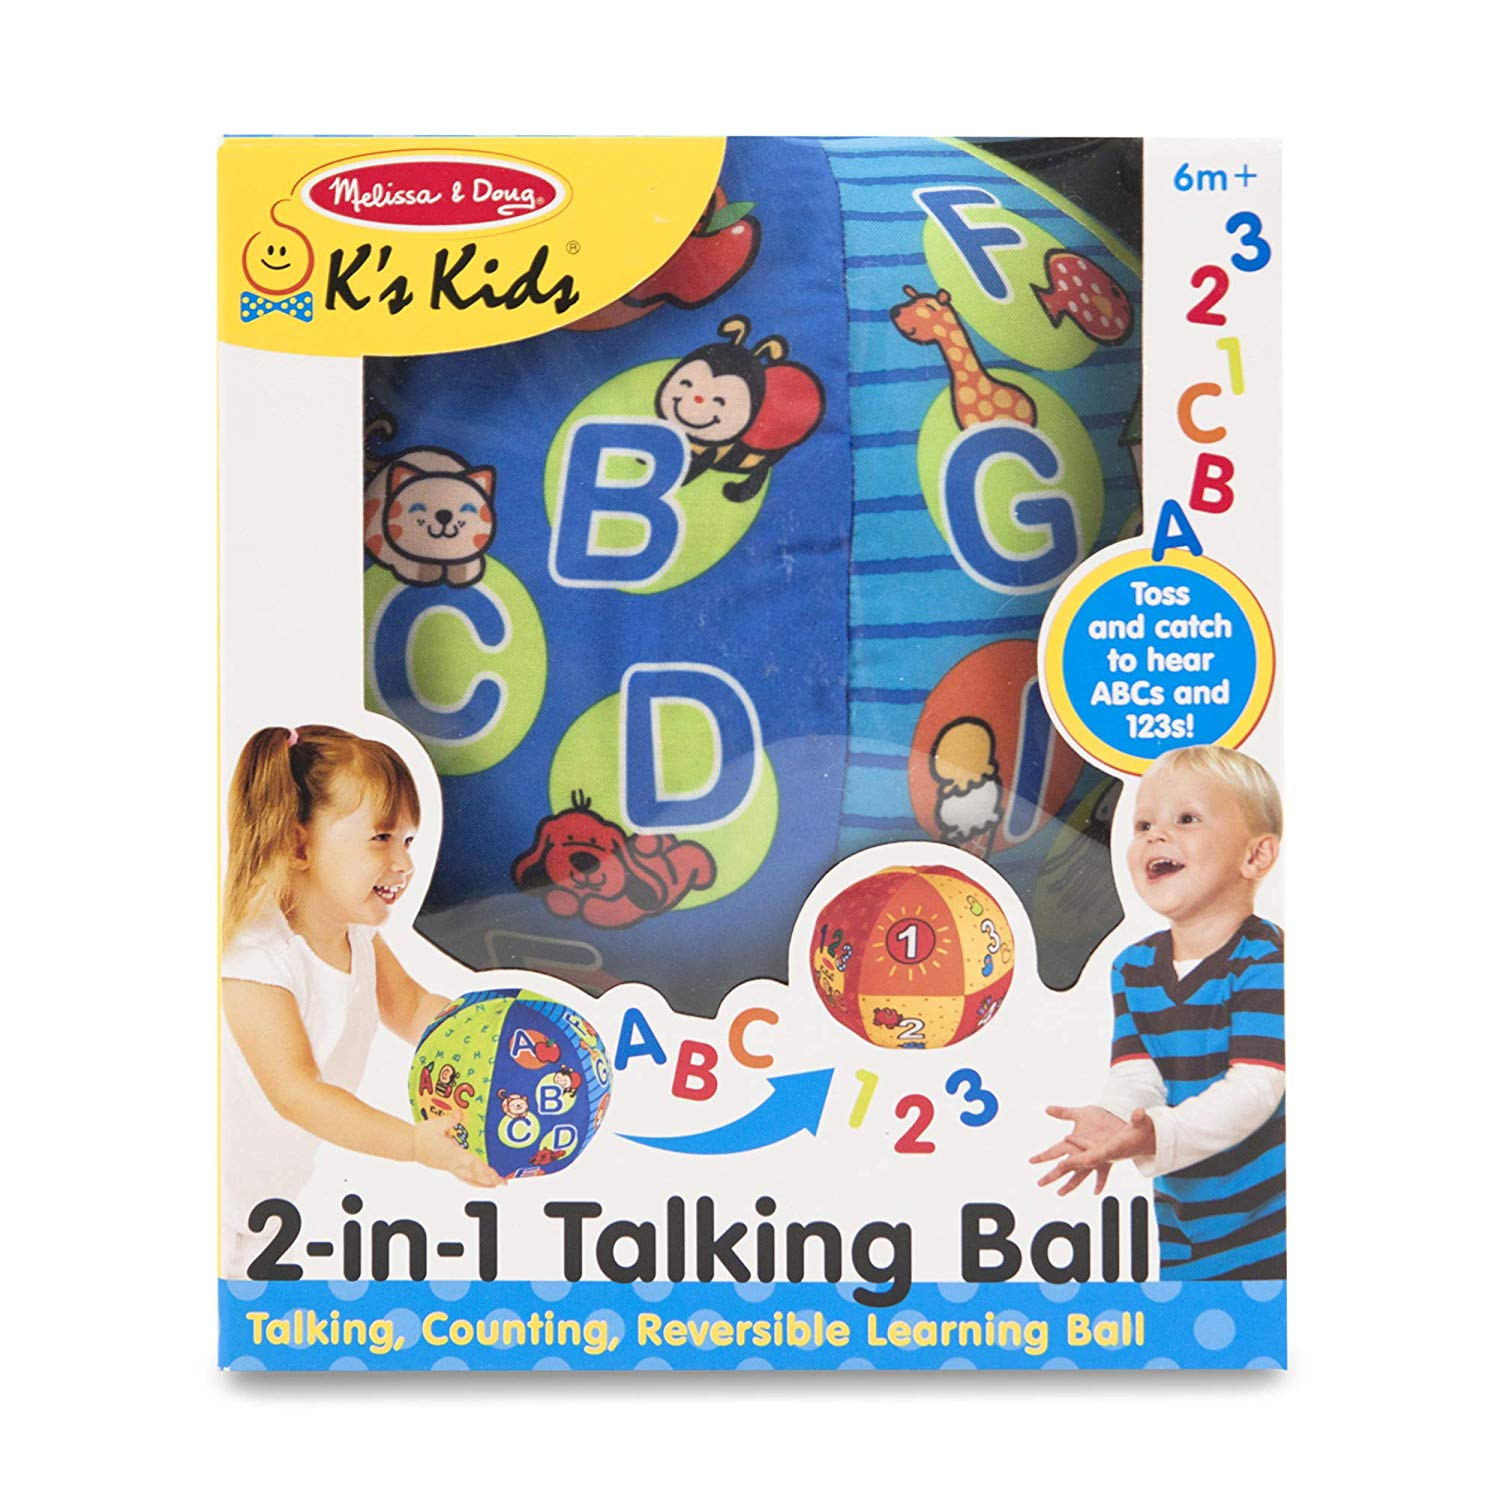 2-in-1 Talking Ball Reviews